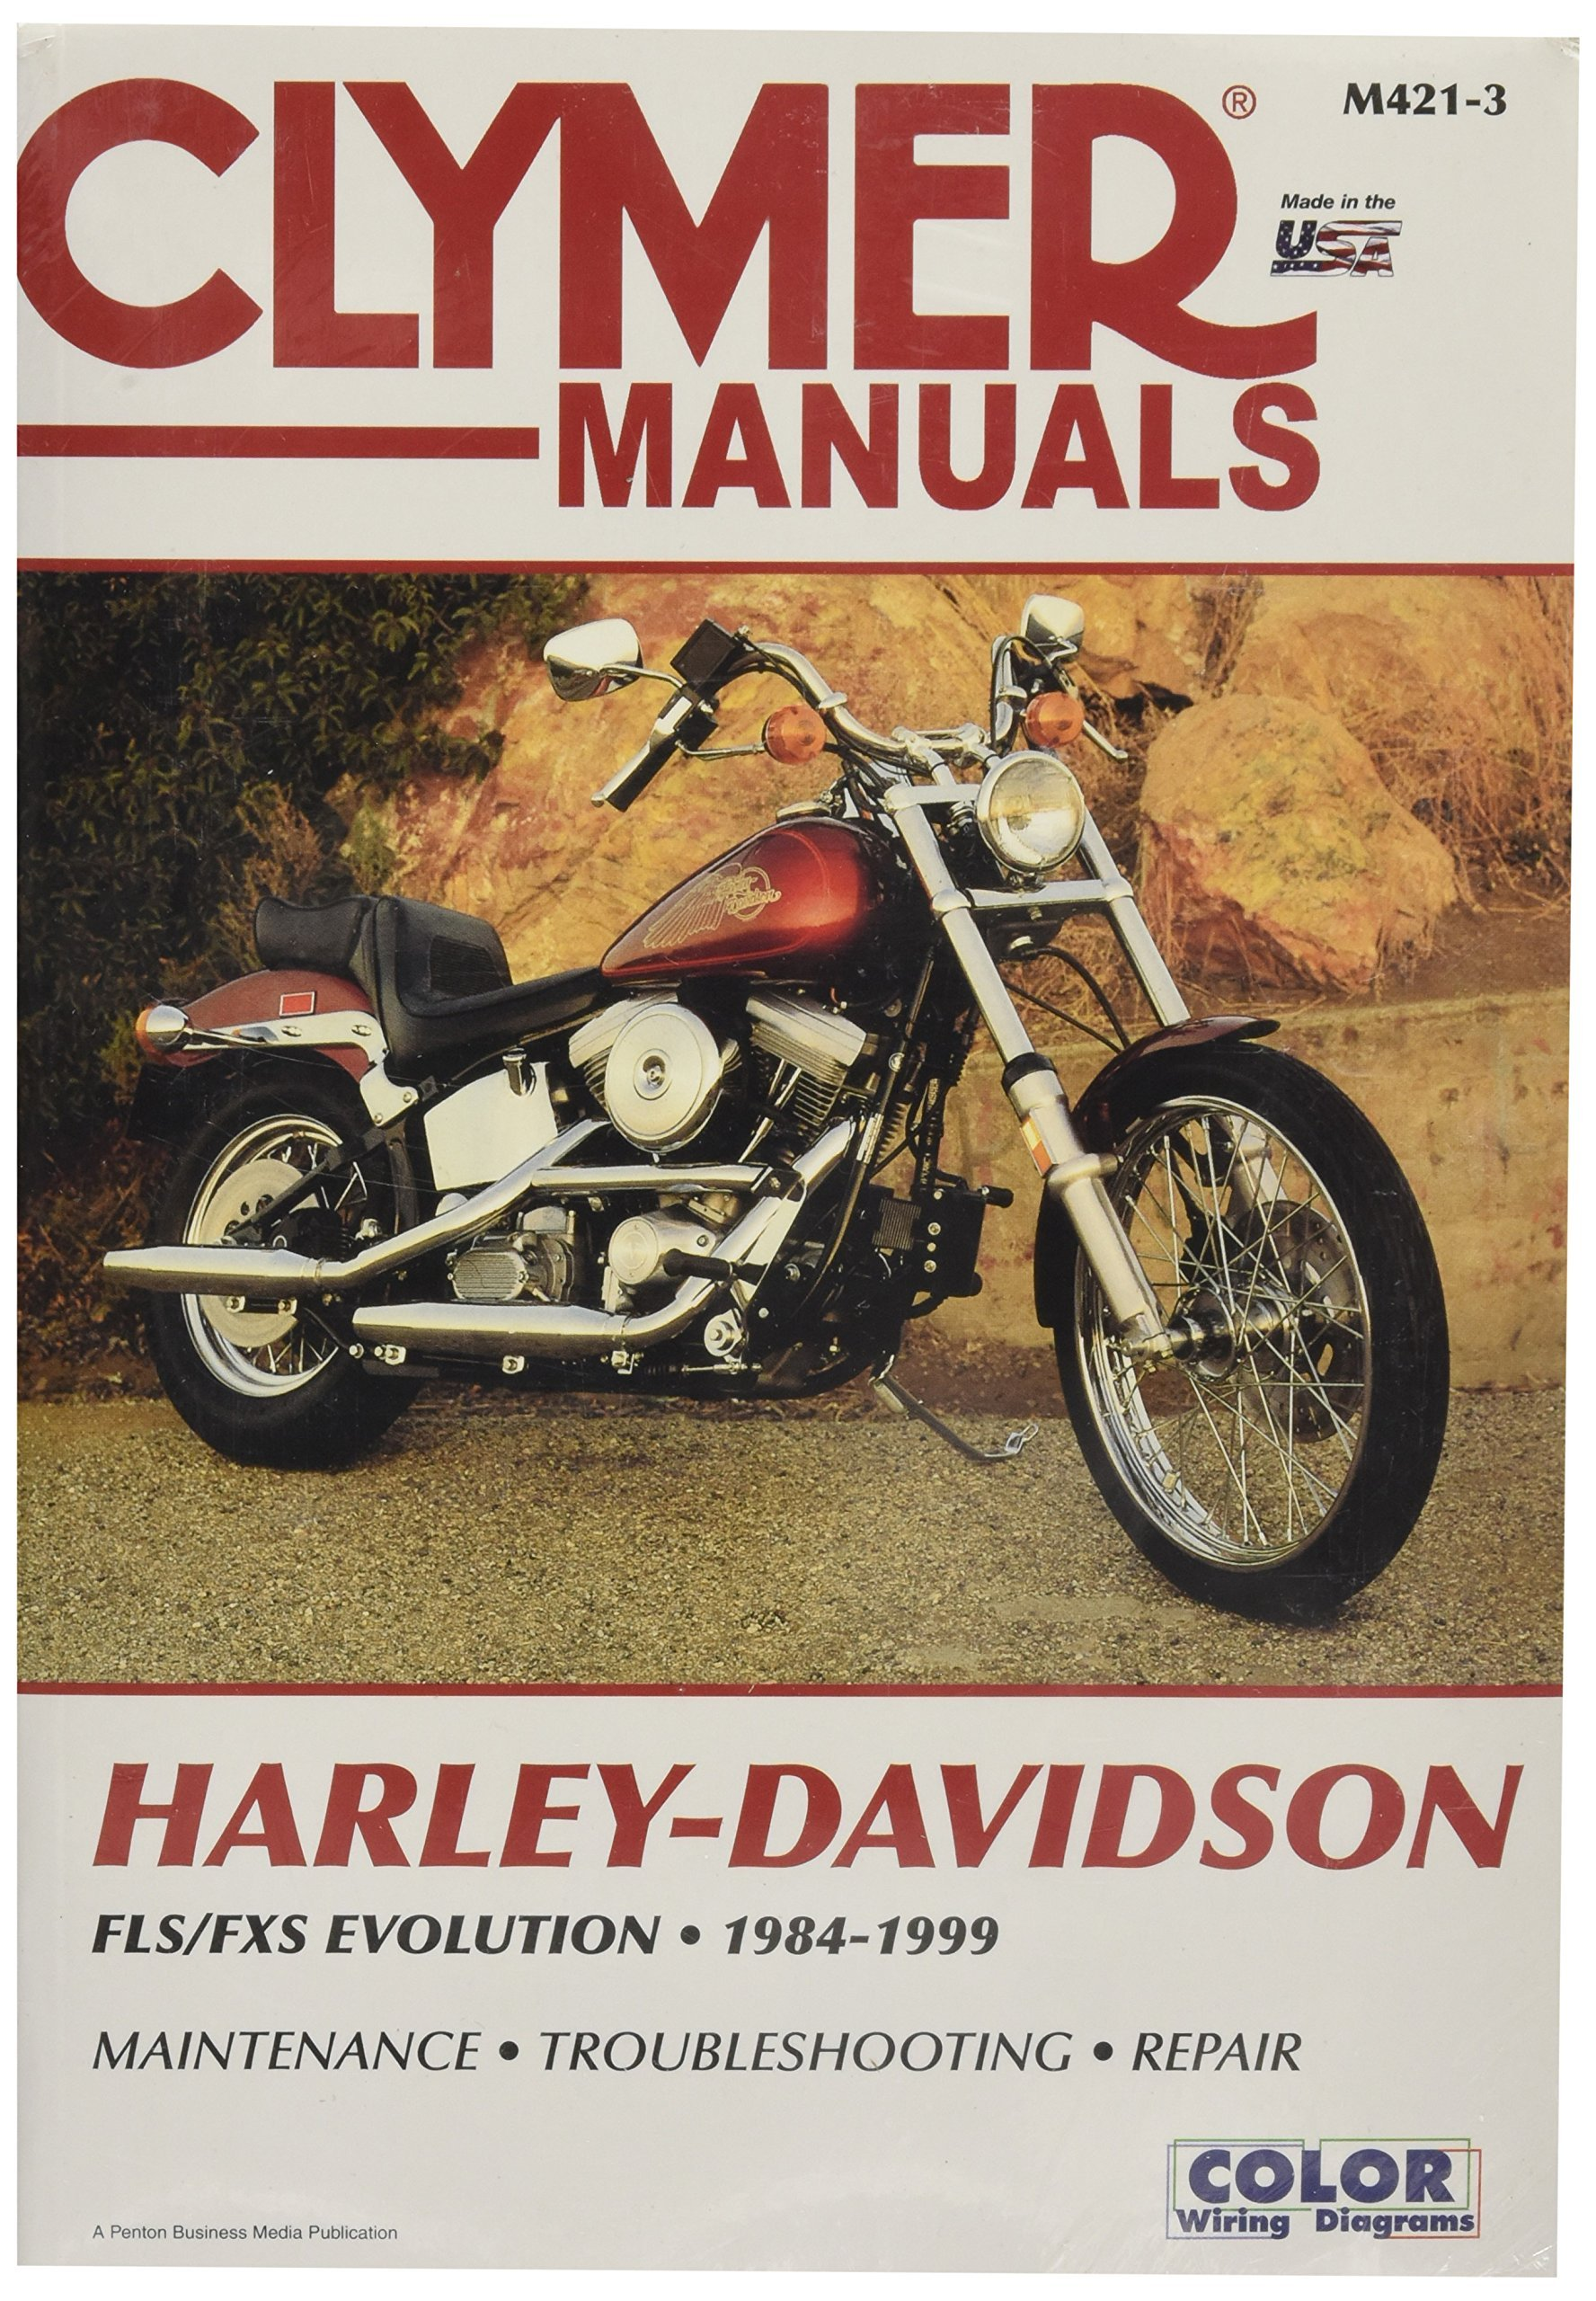 Clymer Softail Repair Manual M4213